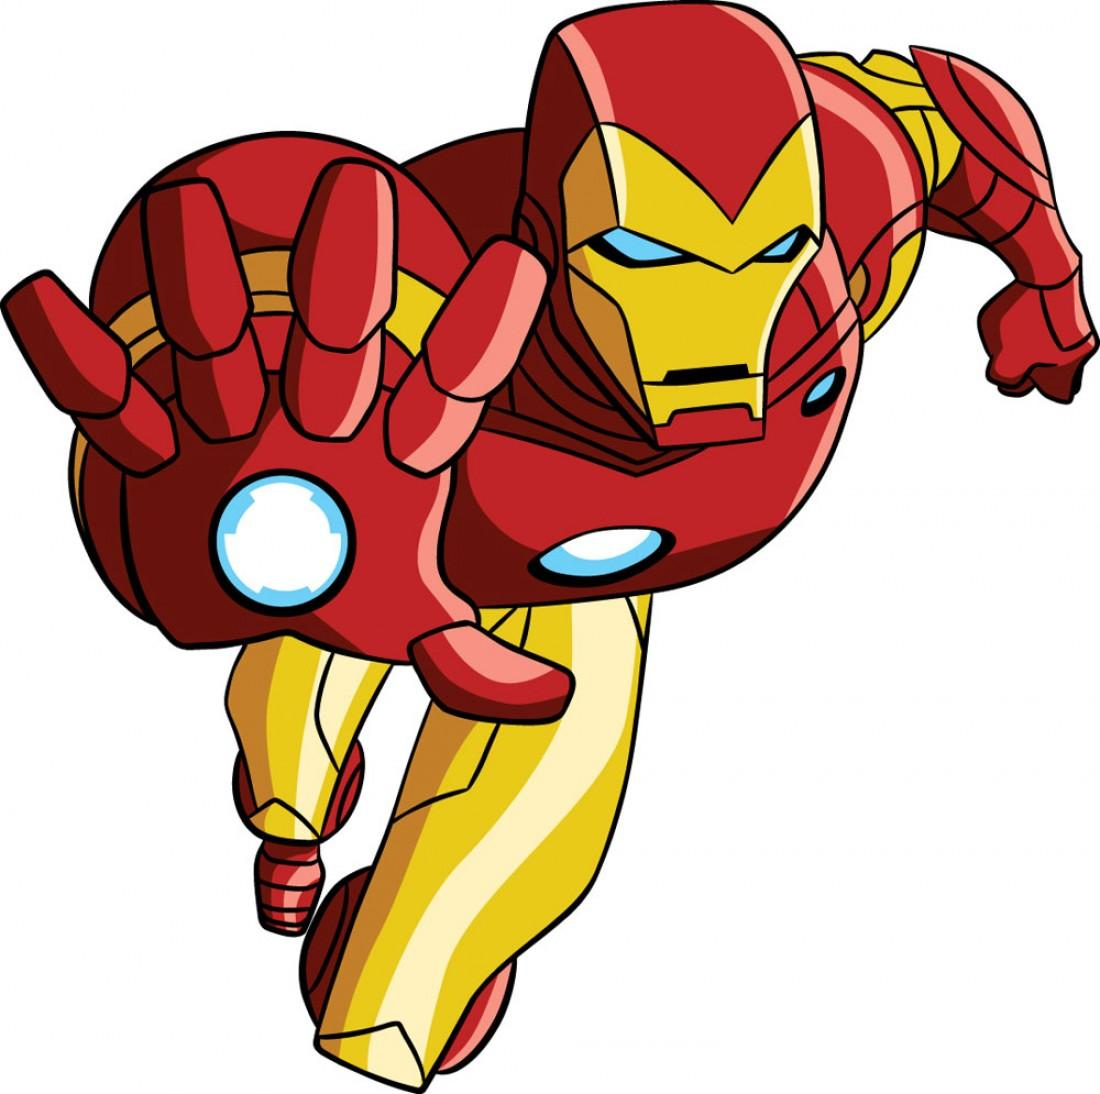 Ironman clipart picture library download Iron Man Clipart Free | Clipart Panda - Free Clipart Images picture library download